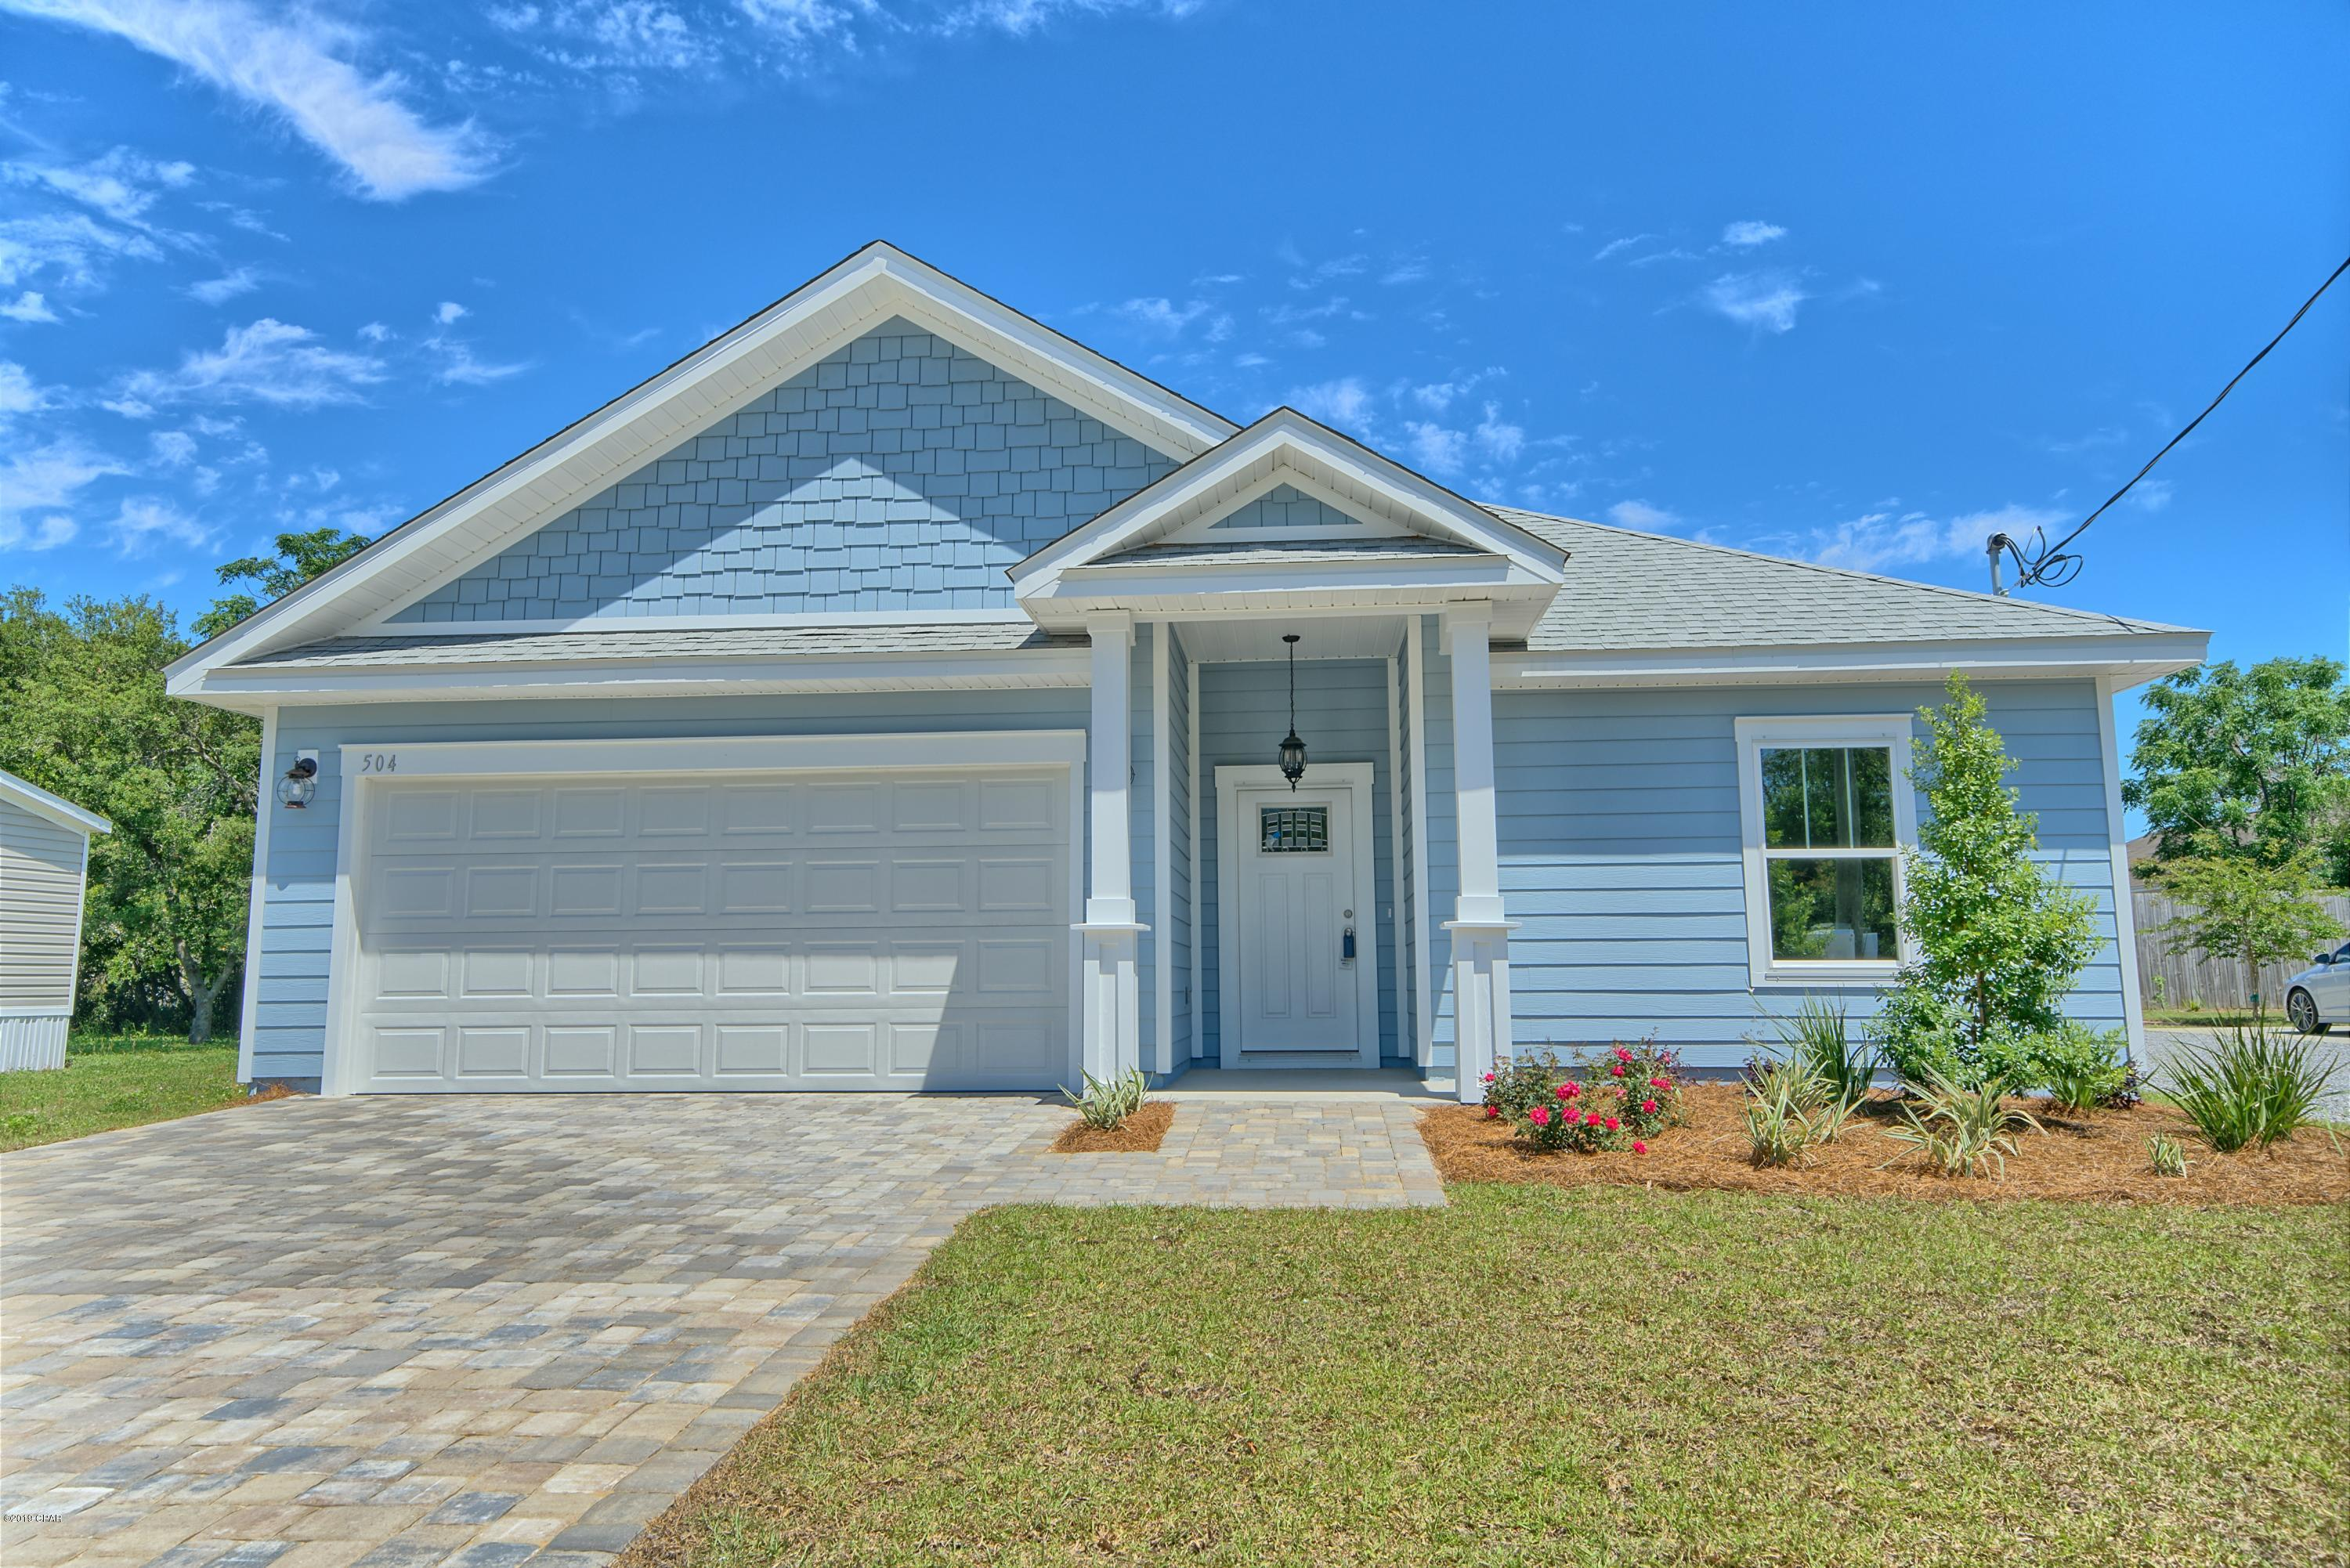 MLS Property 681463 for sale in Panama City Beach